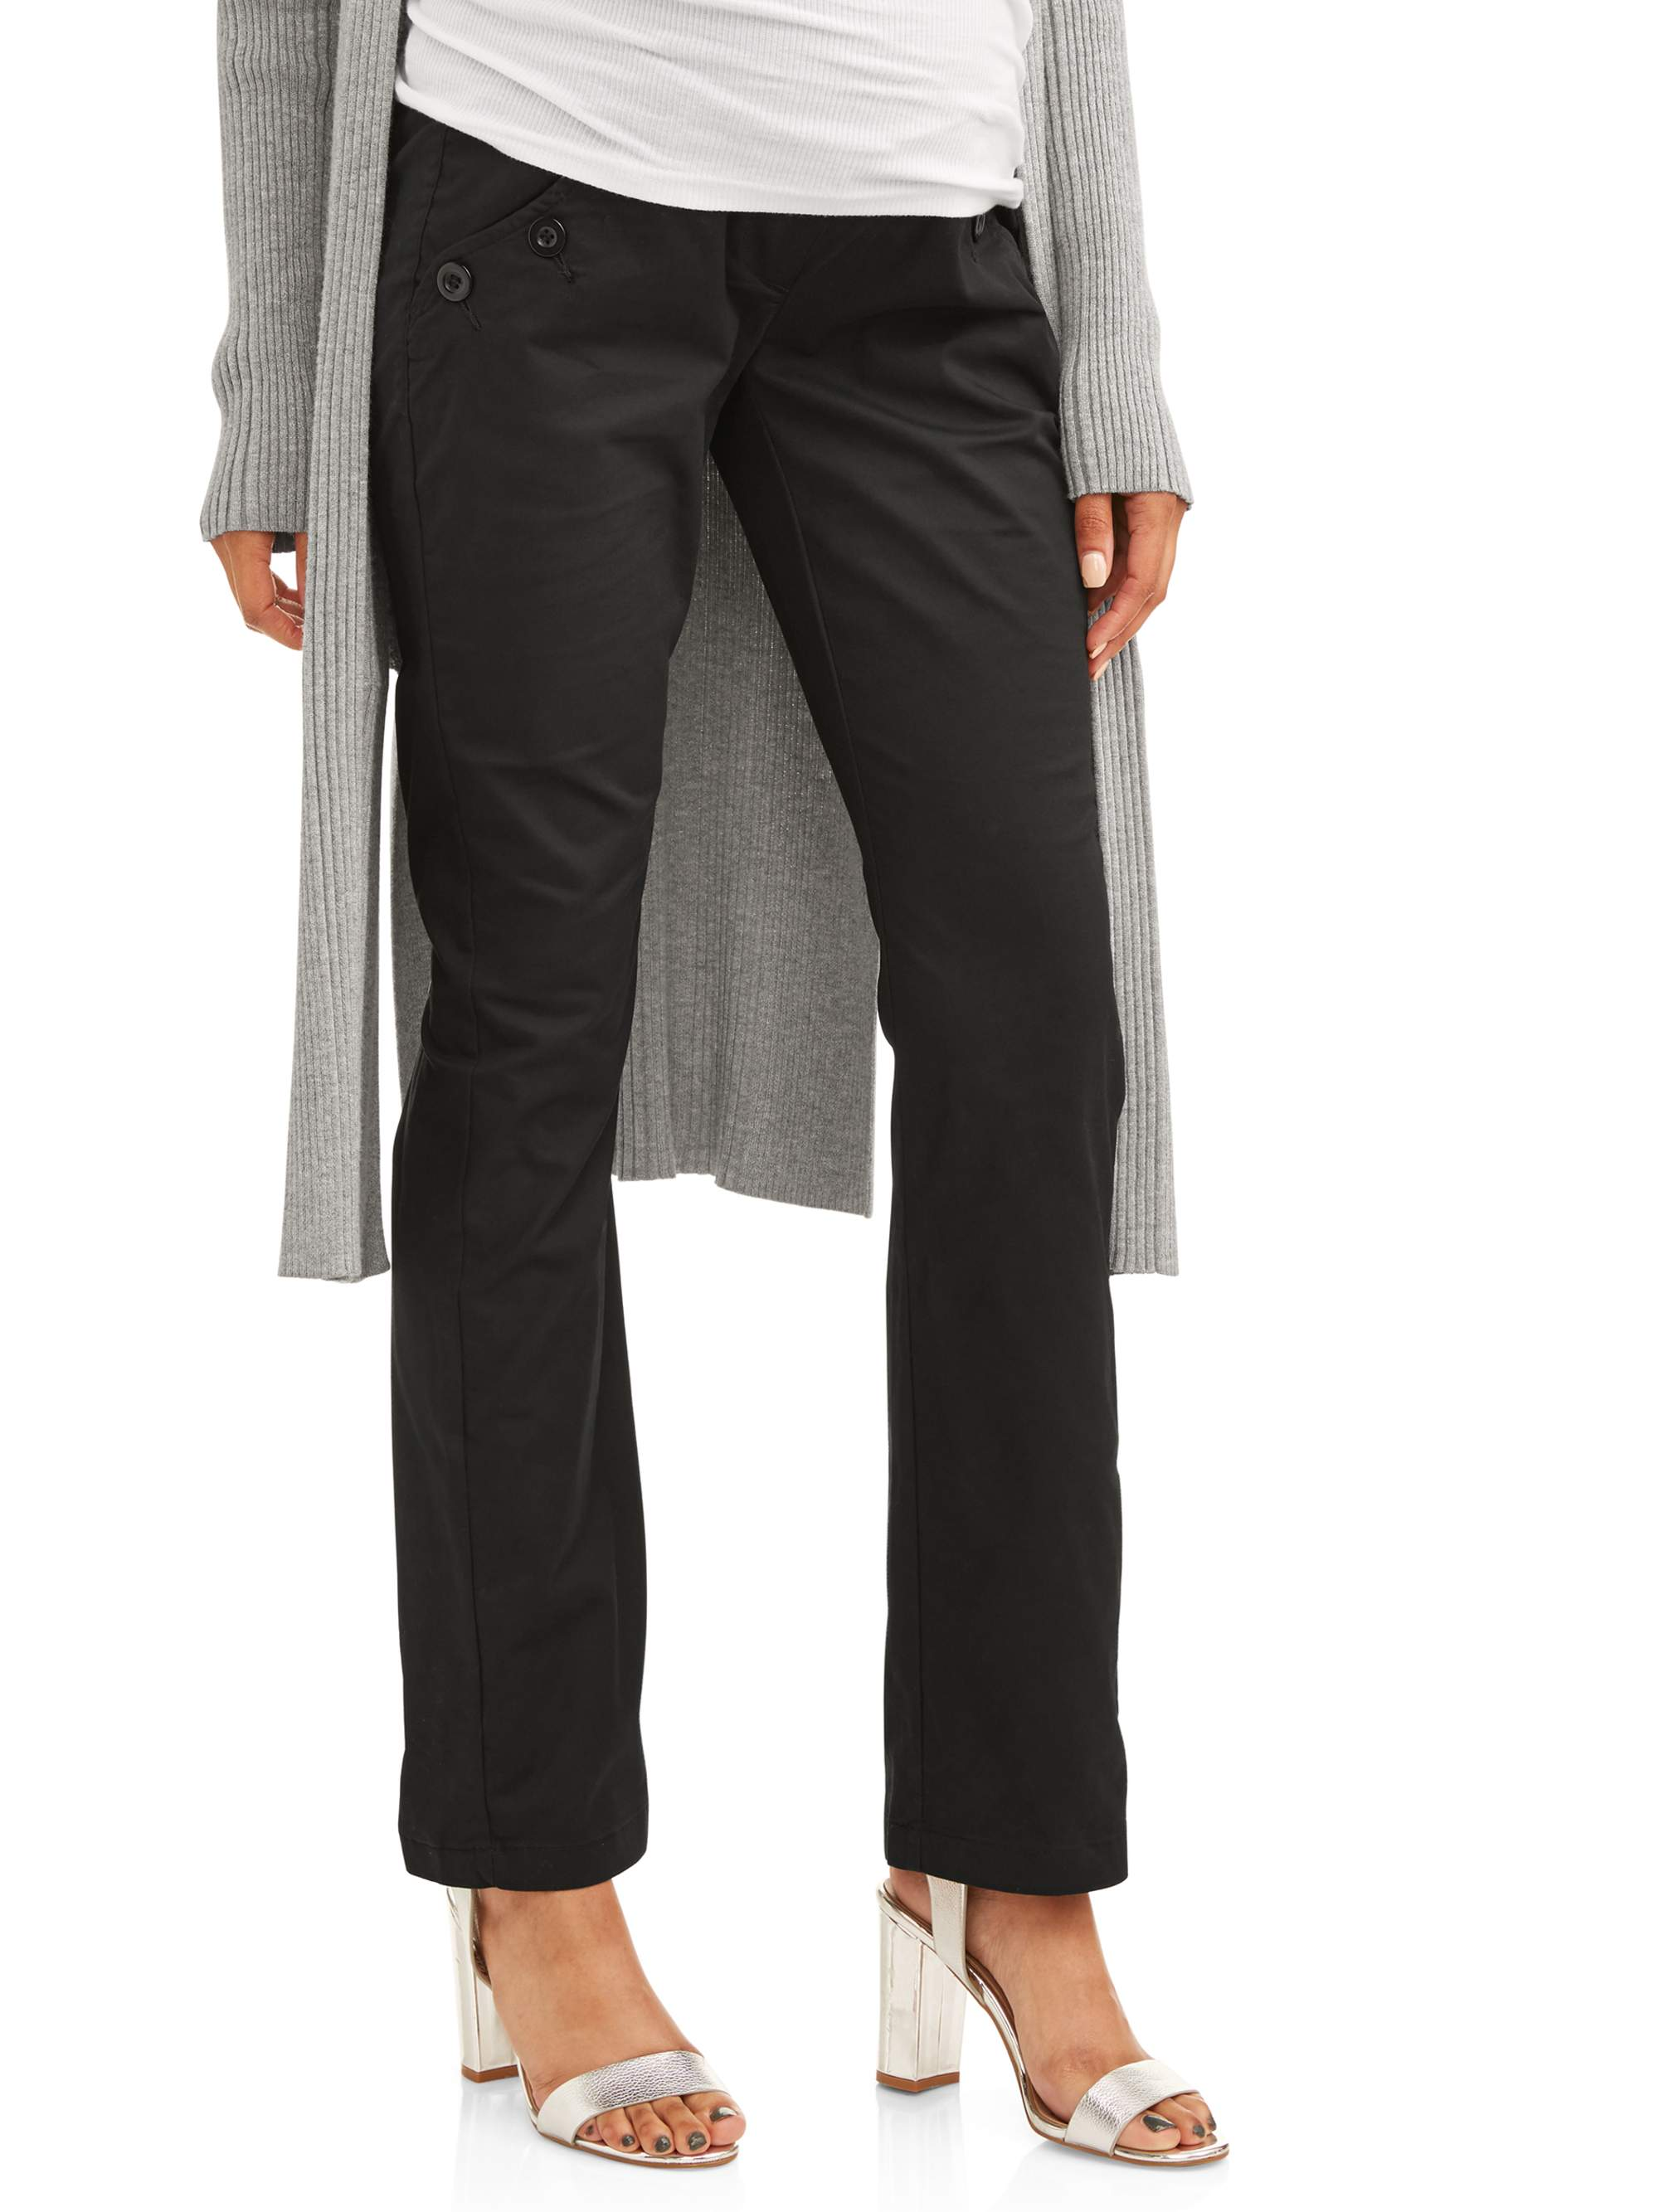 Full Panel Woven Maternity Pants With Button Front Curved Pockets by Jaax